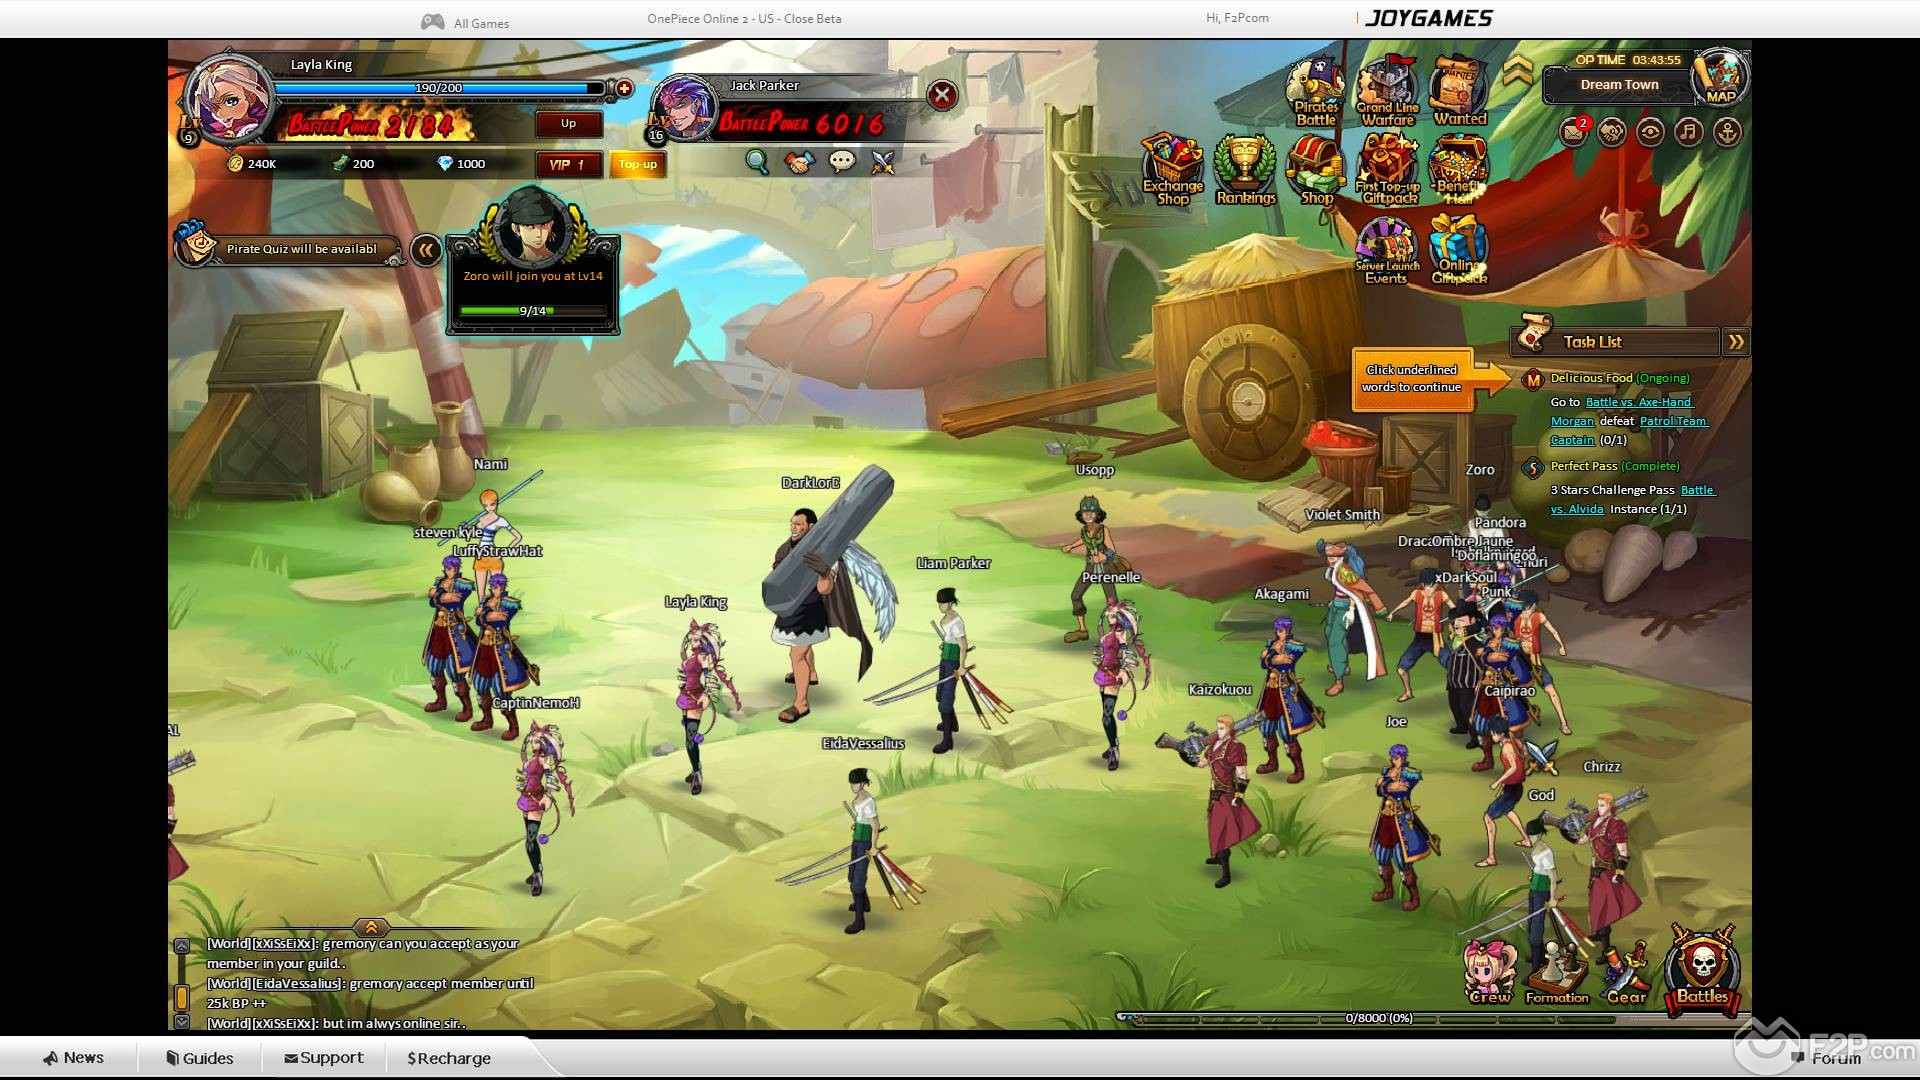 pirate king online 2